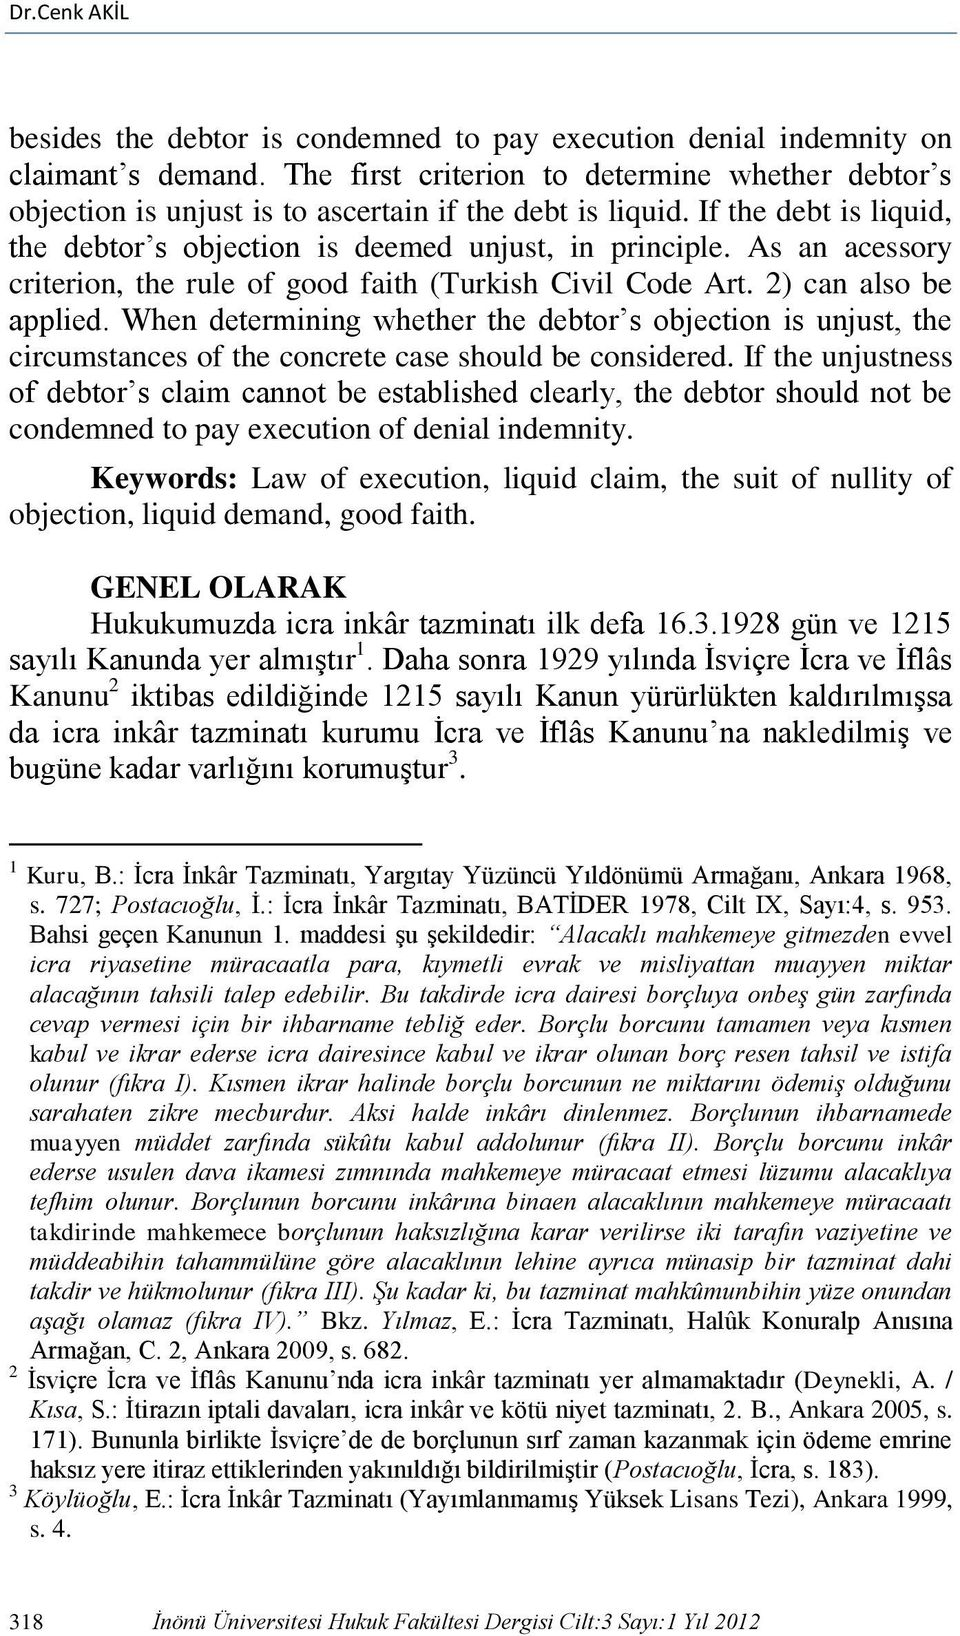 As an acessory criterion, the rule of good faith (Turkish Civil Code Art. 2) can also be applied.